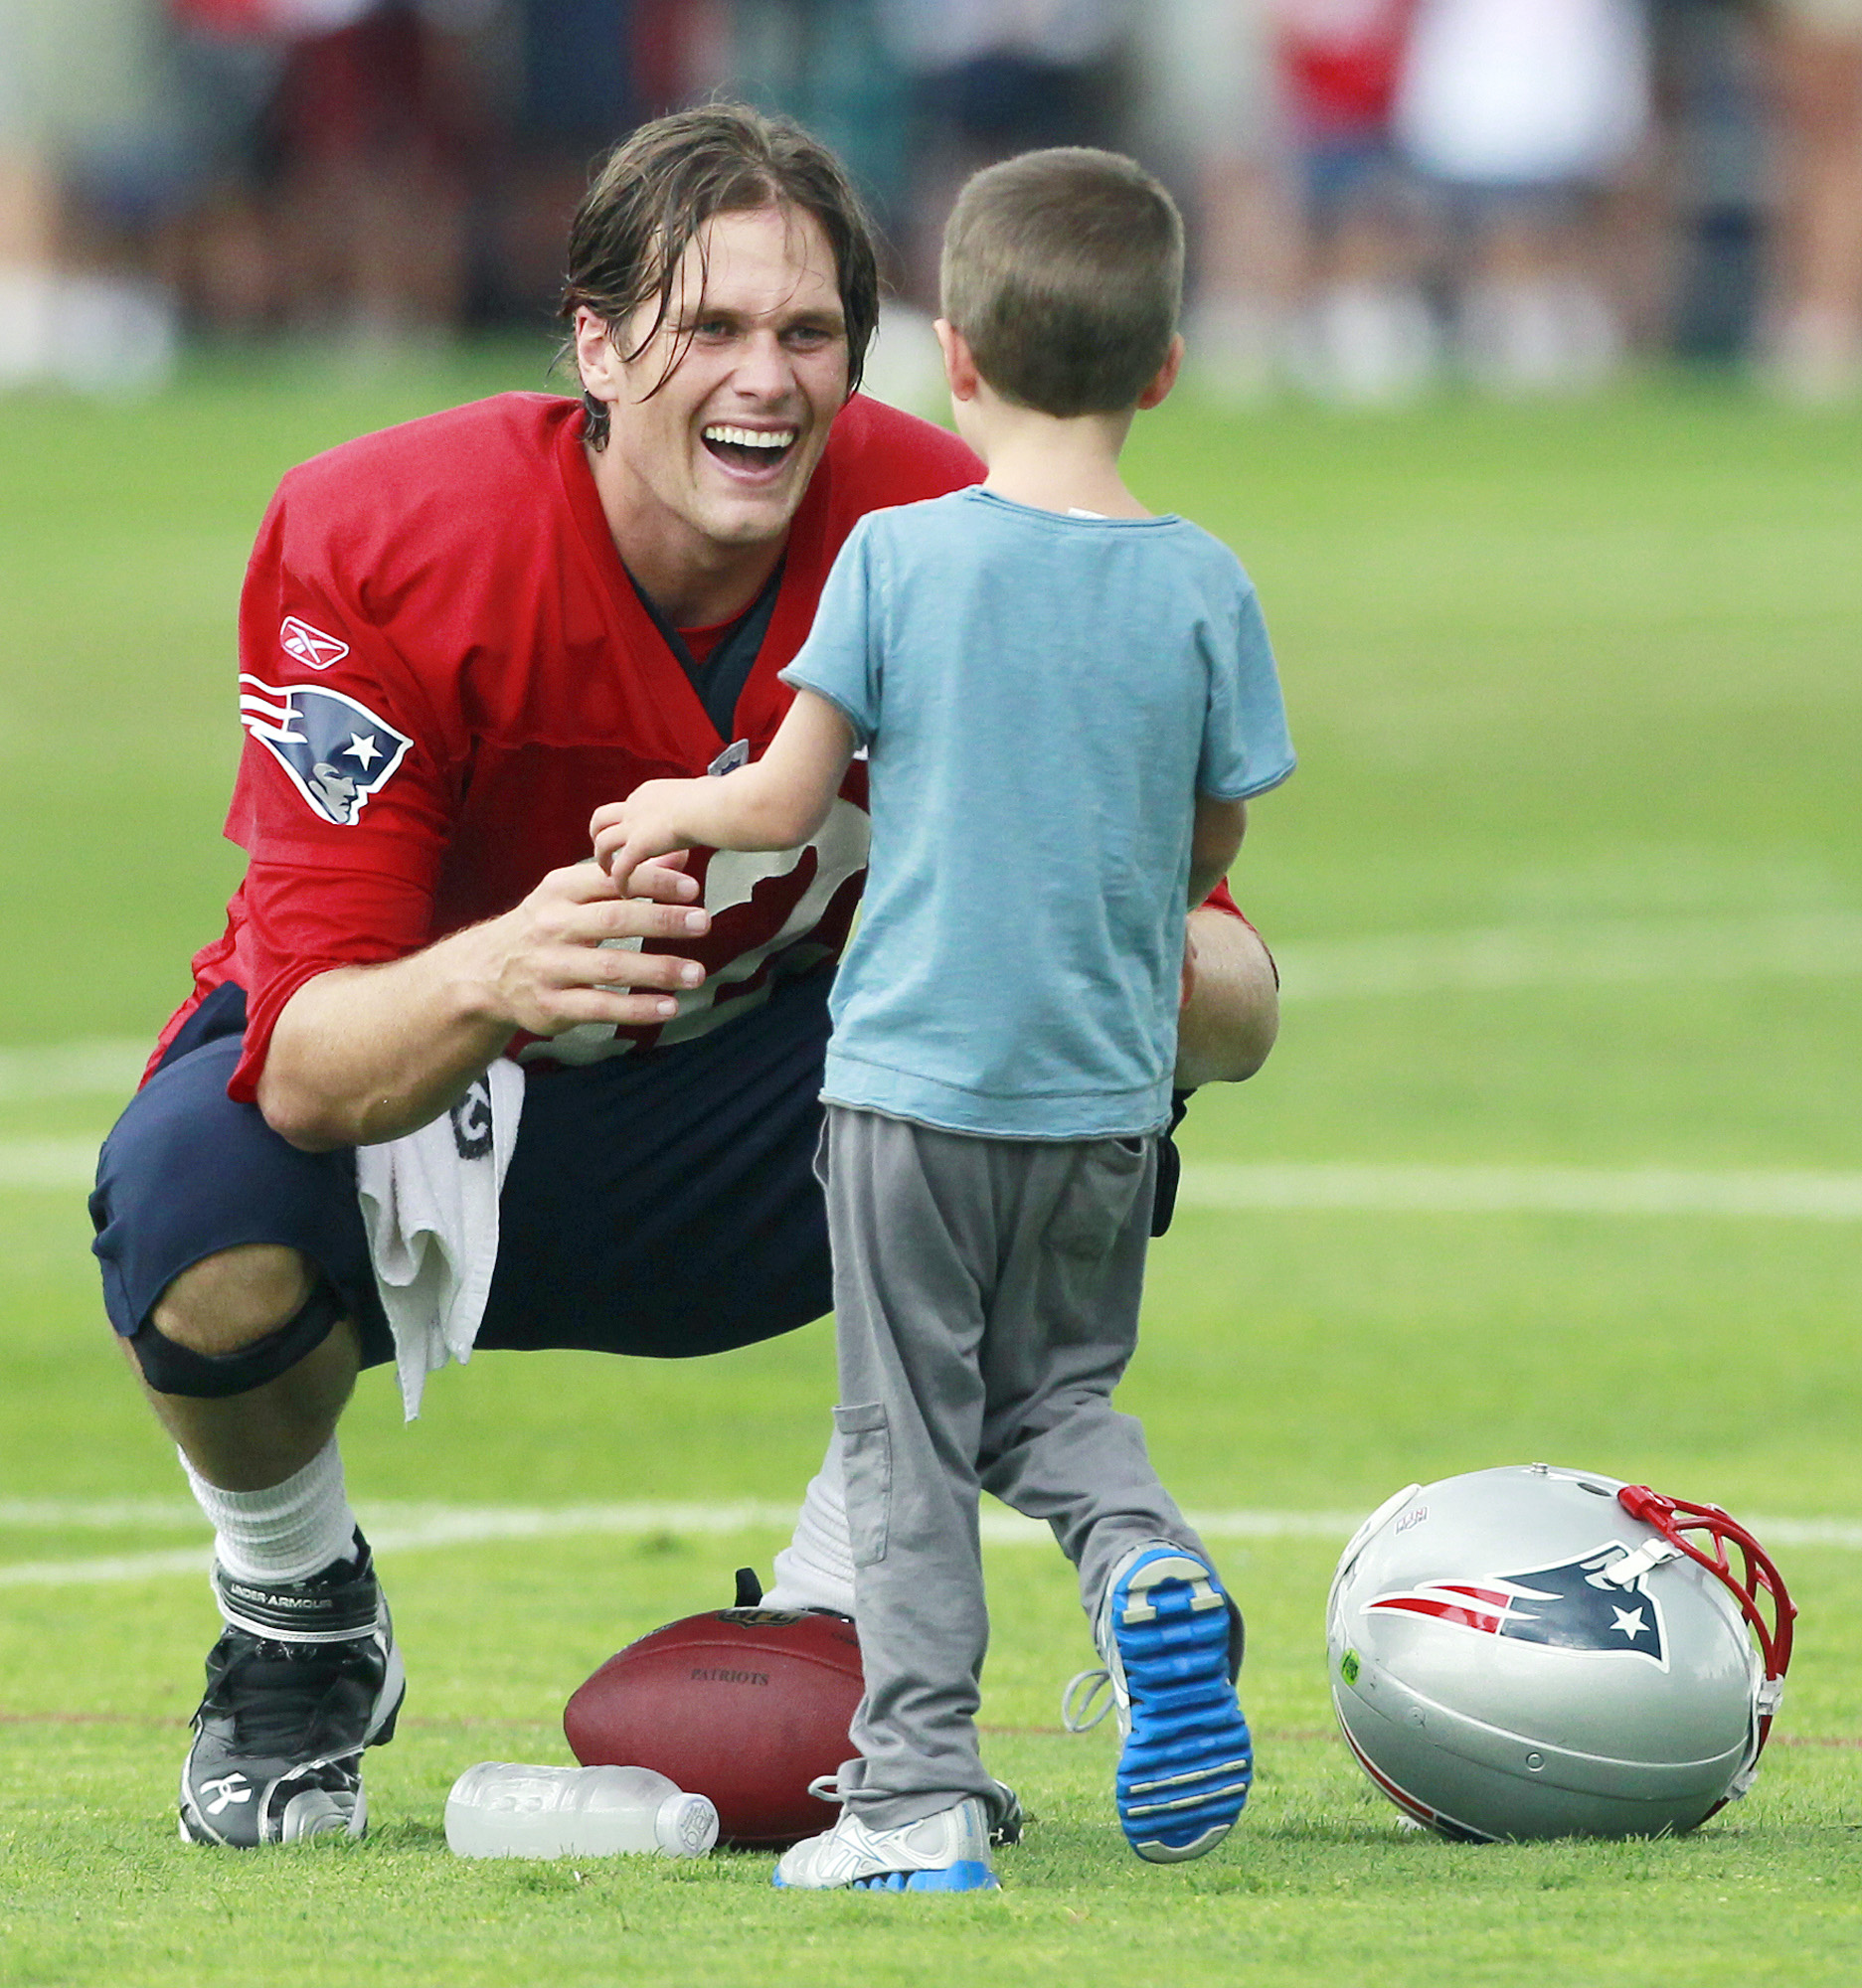 New England Patriots' Tom Brady greets his son Jack on the field after NFL football training camp Tuesday, Aug. 9, 2011, in Foxborough, Mass. (AP Photo/Michael Dwyer)